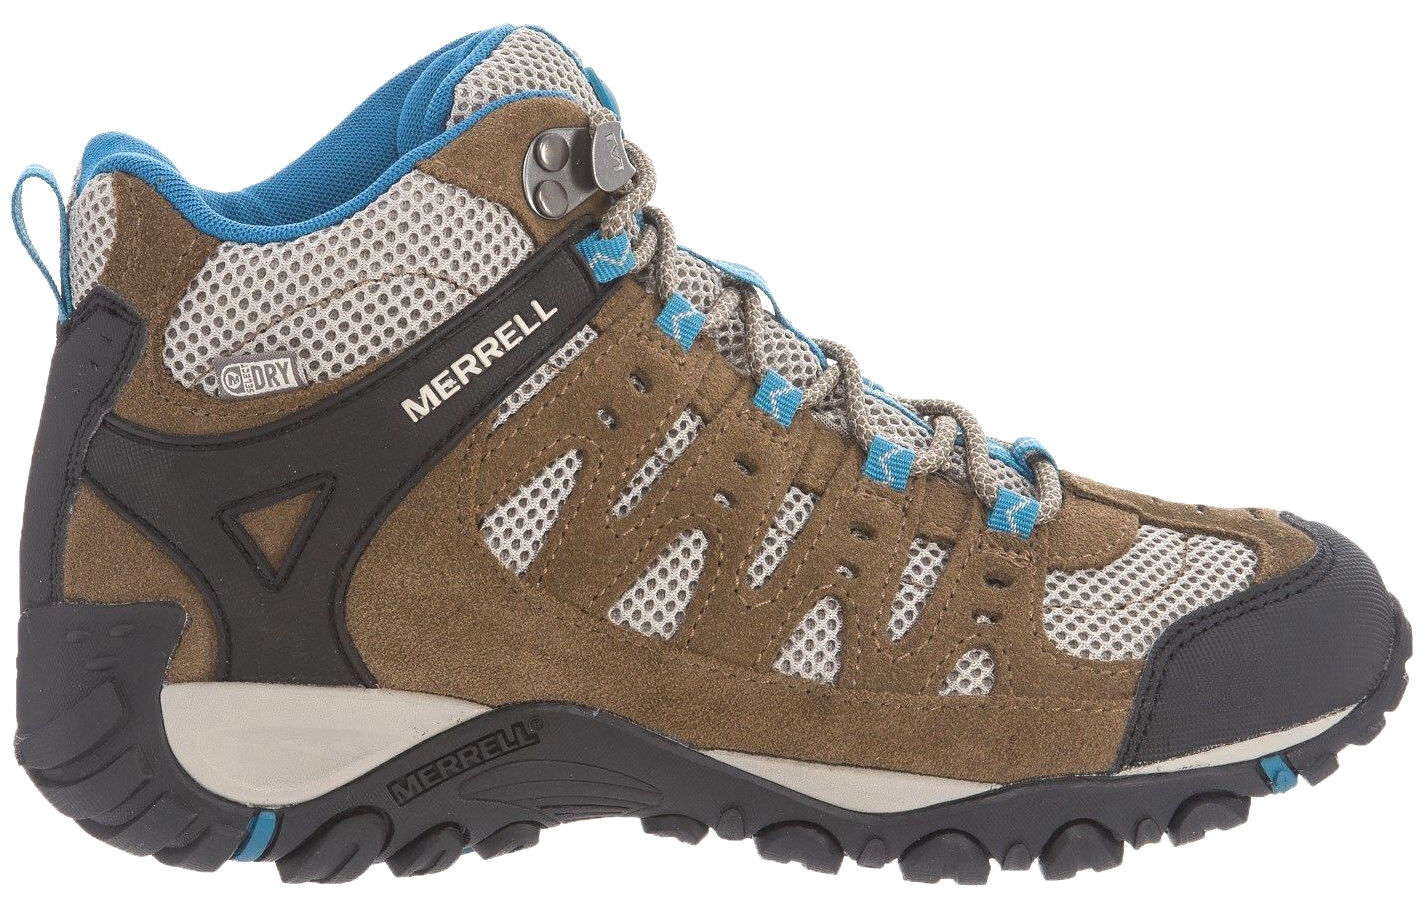 MERRELL ACCENTOR MID women's Waterproof Hiking Trail Outdoor Boots